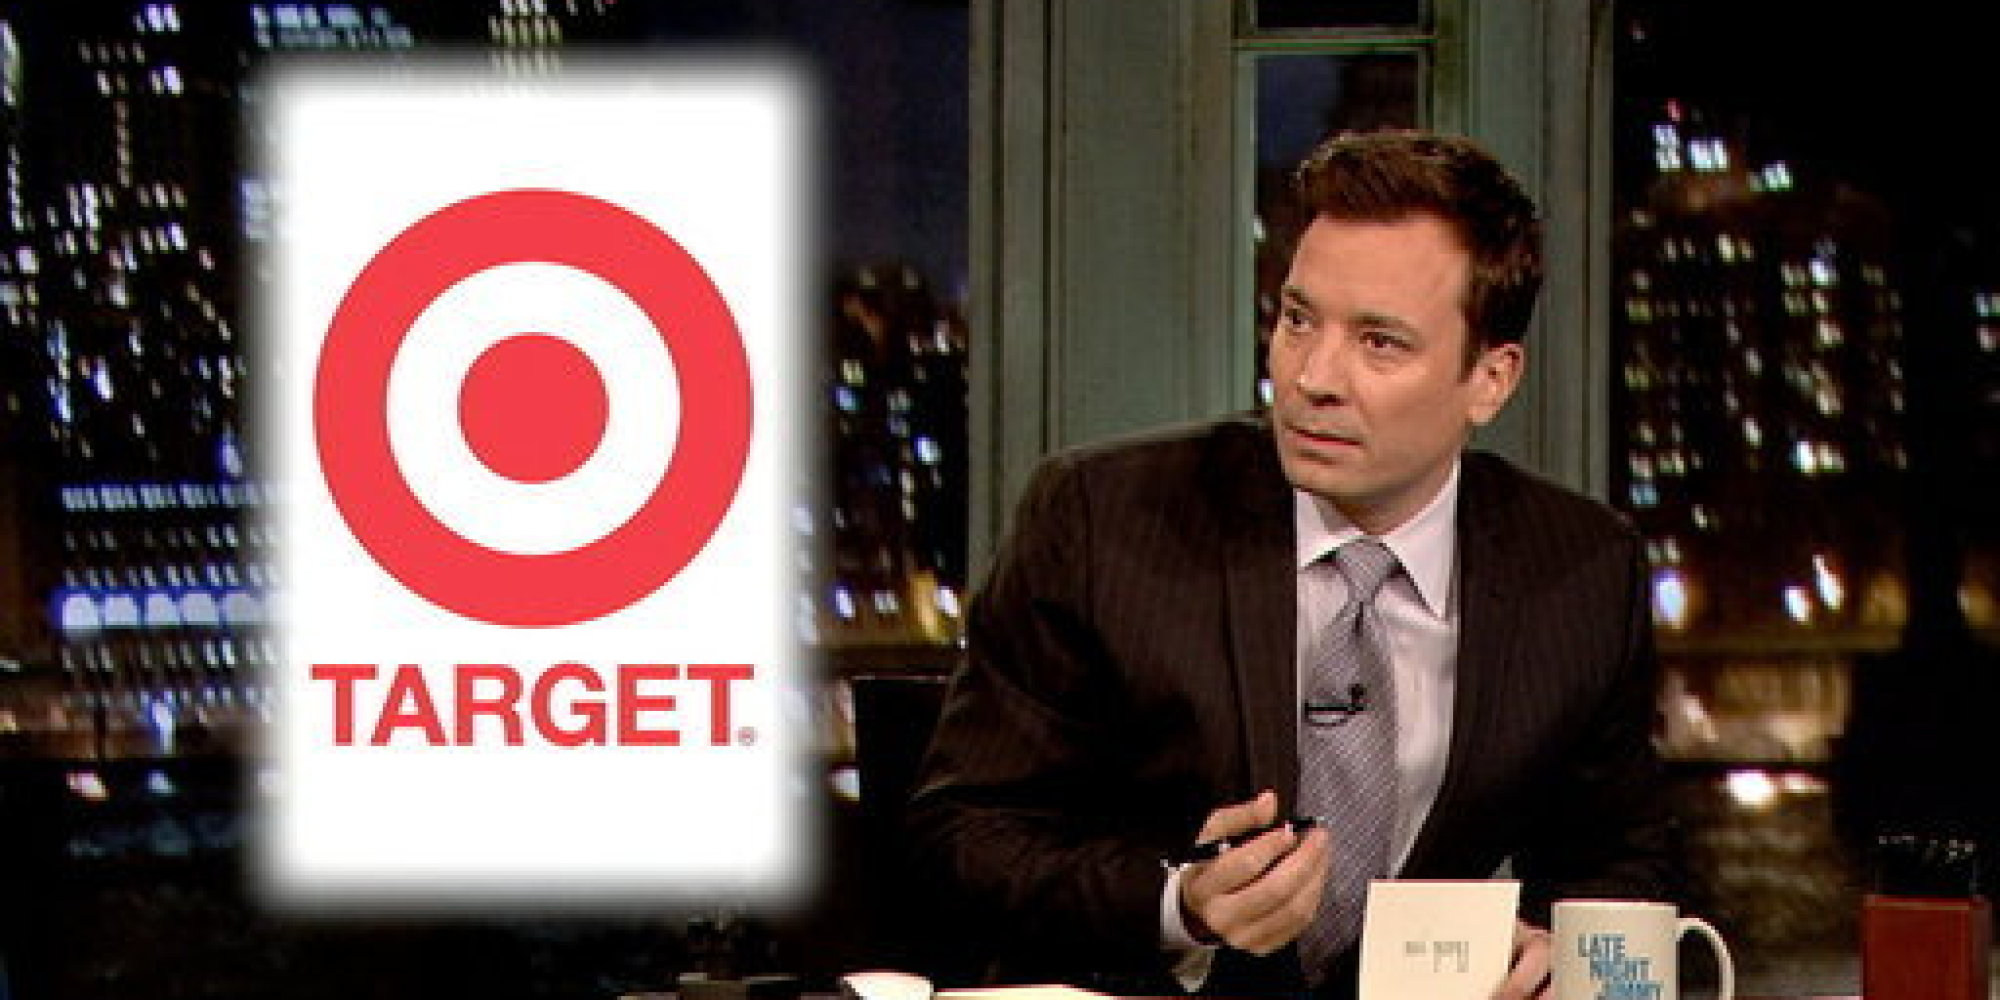 Jimmy Fallon's Thank You Notes For Target, A Rod And 'Behind the